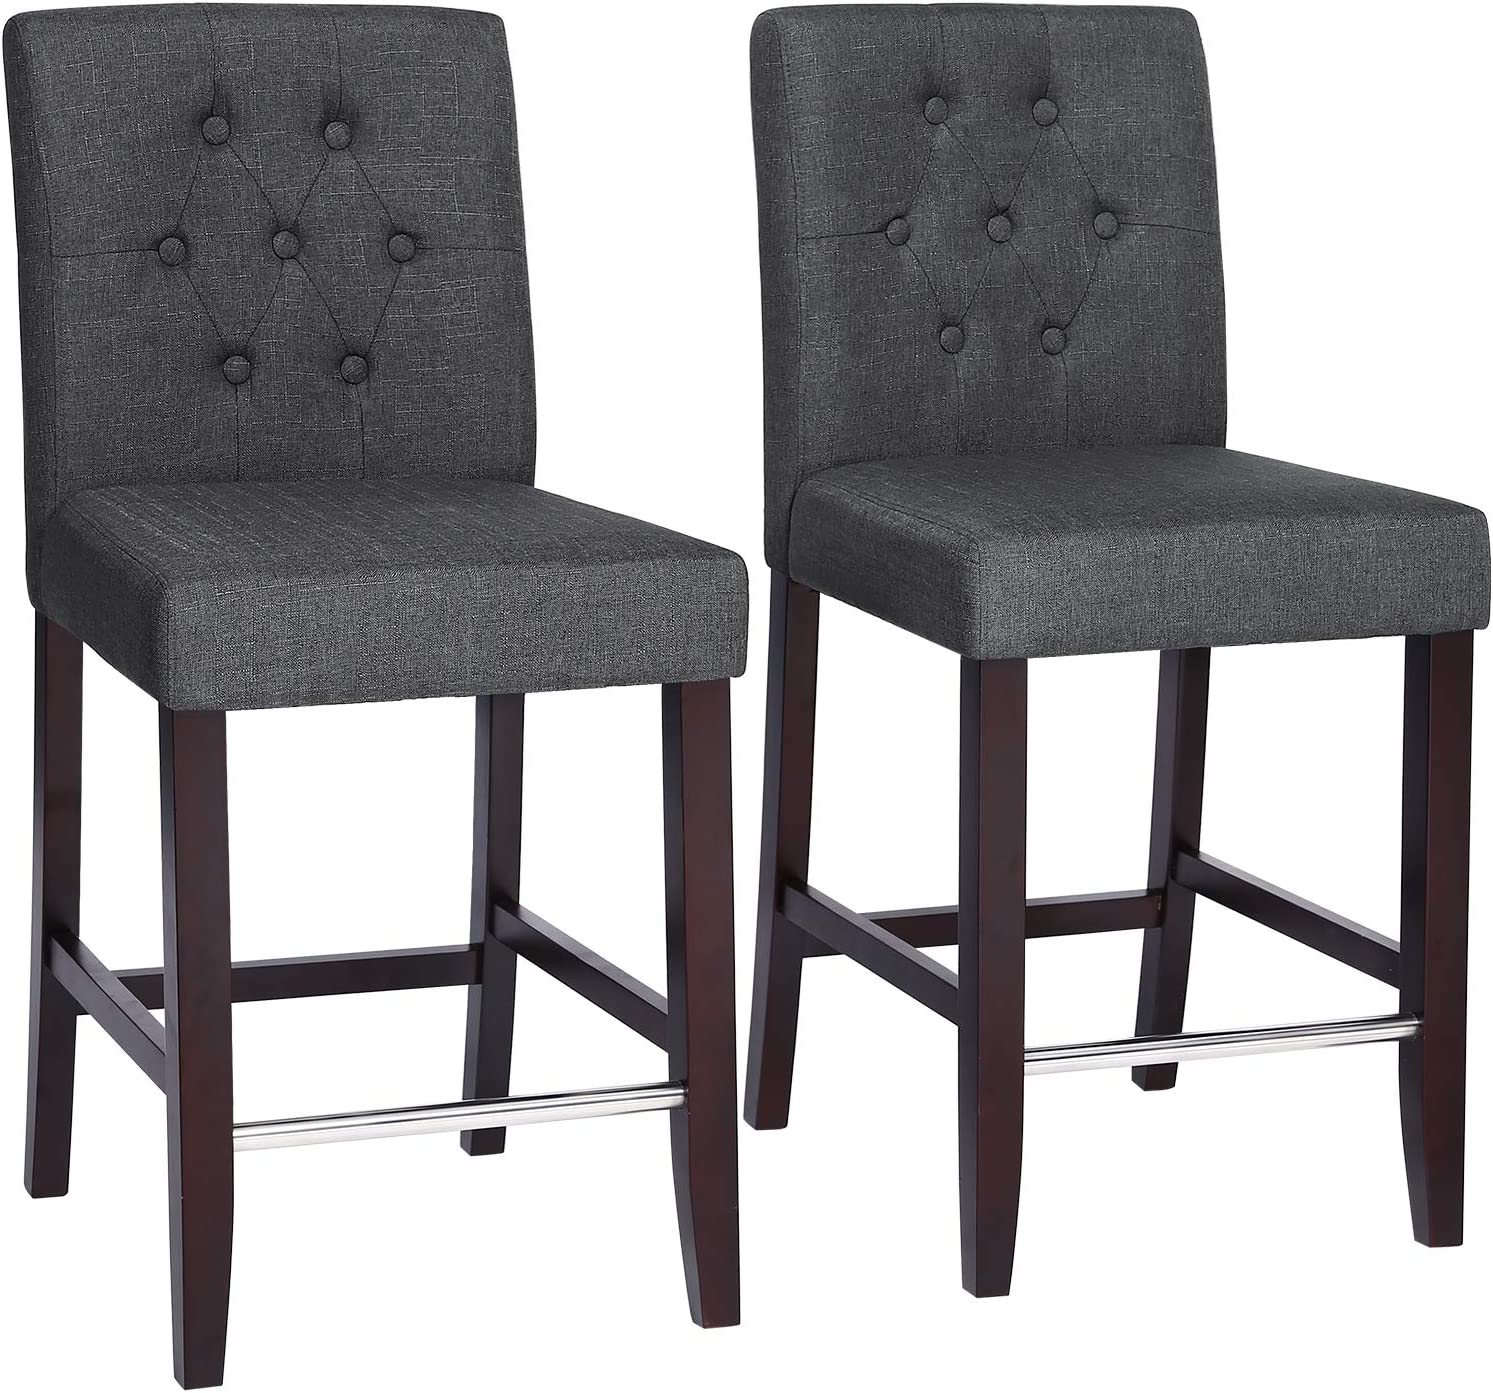 SONGMICS Set of 2 Bar Stools Kitchen Breakfast Chairs, with Button Tufted Backrest, Linen-Style Fabric, Solid Wood Legs, with Footrest, Dark Gray ULDC34GY, Seat Height 24